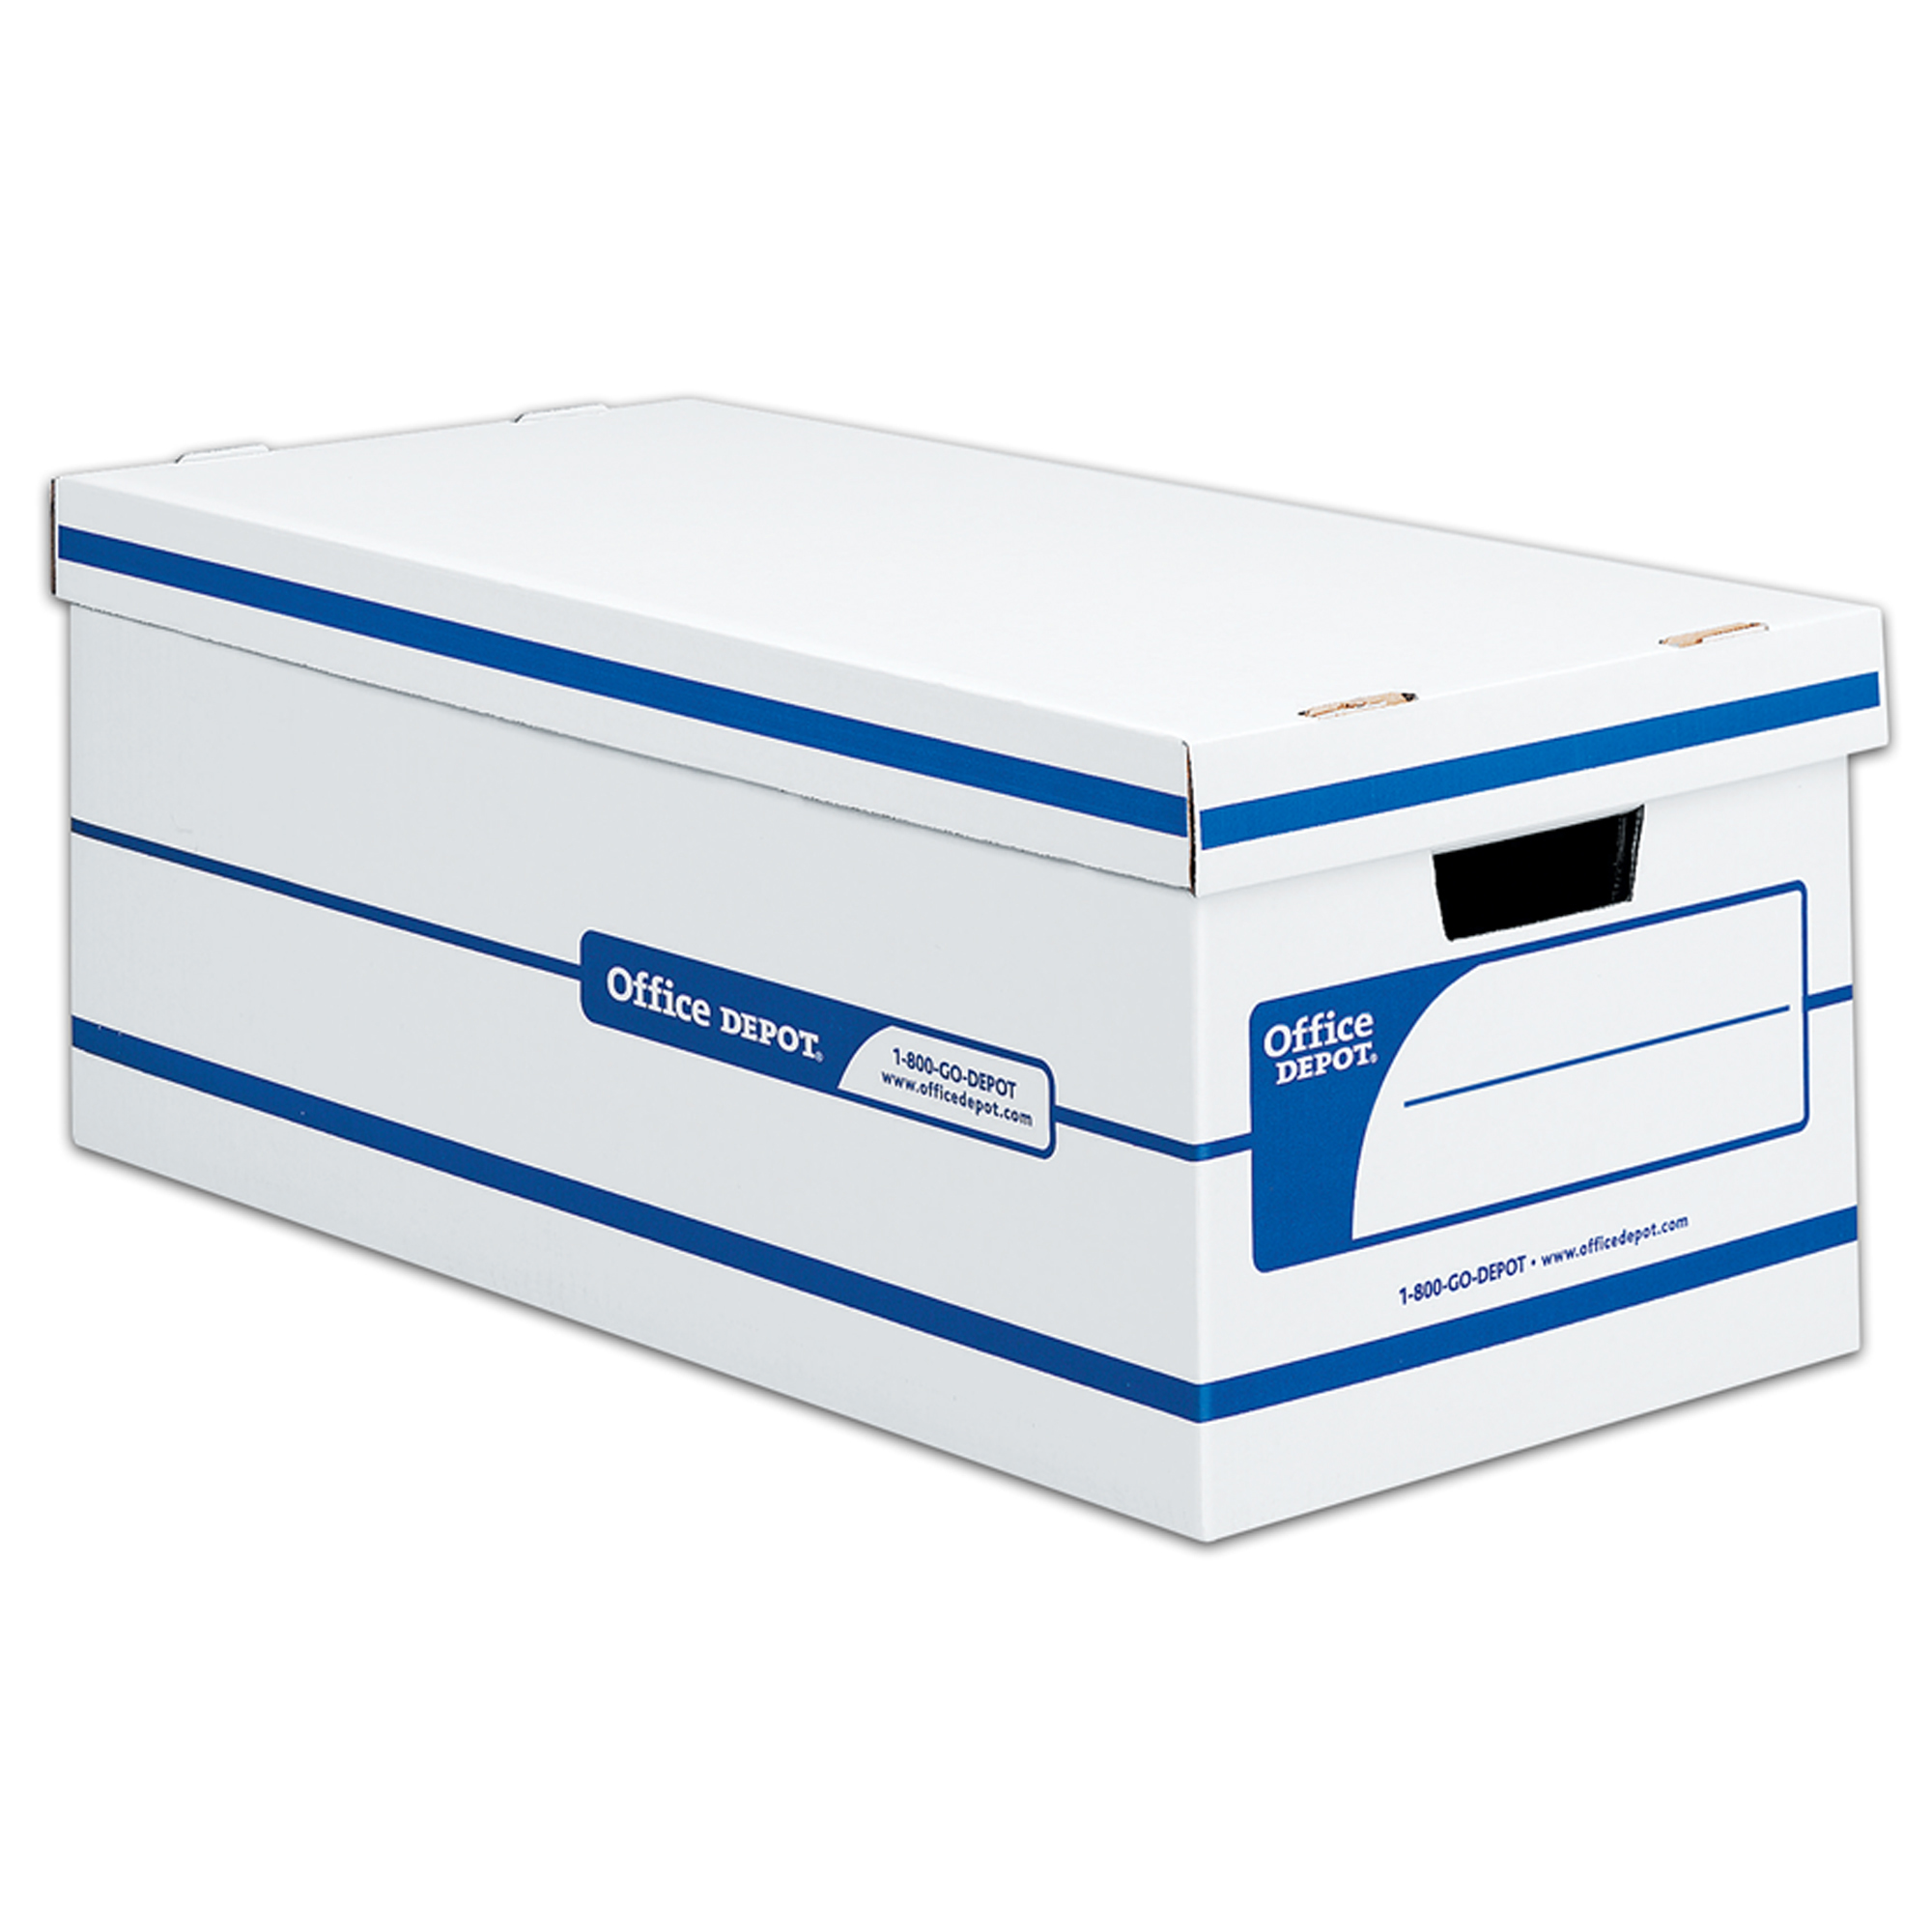 """Office Depot® Brand Quick Set Up Standard-Duty Storage Boxes With Lift-Off Lids And Built-In Handles, Letter Size, 24"""" x 12"""" x 10"""", 60% Recycled, White/Blue, Case Of 12"""